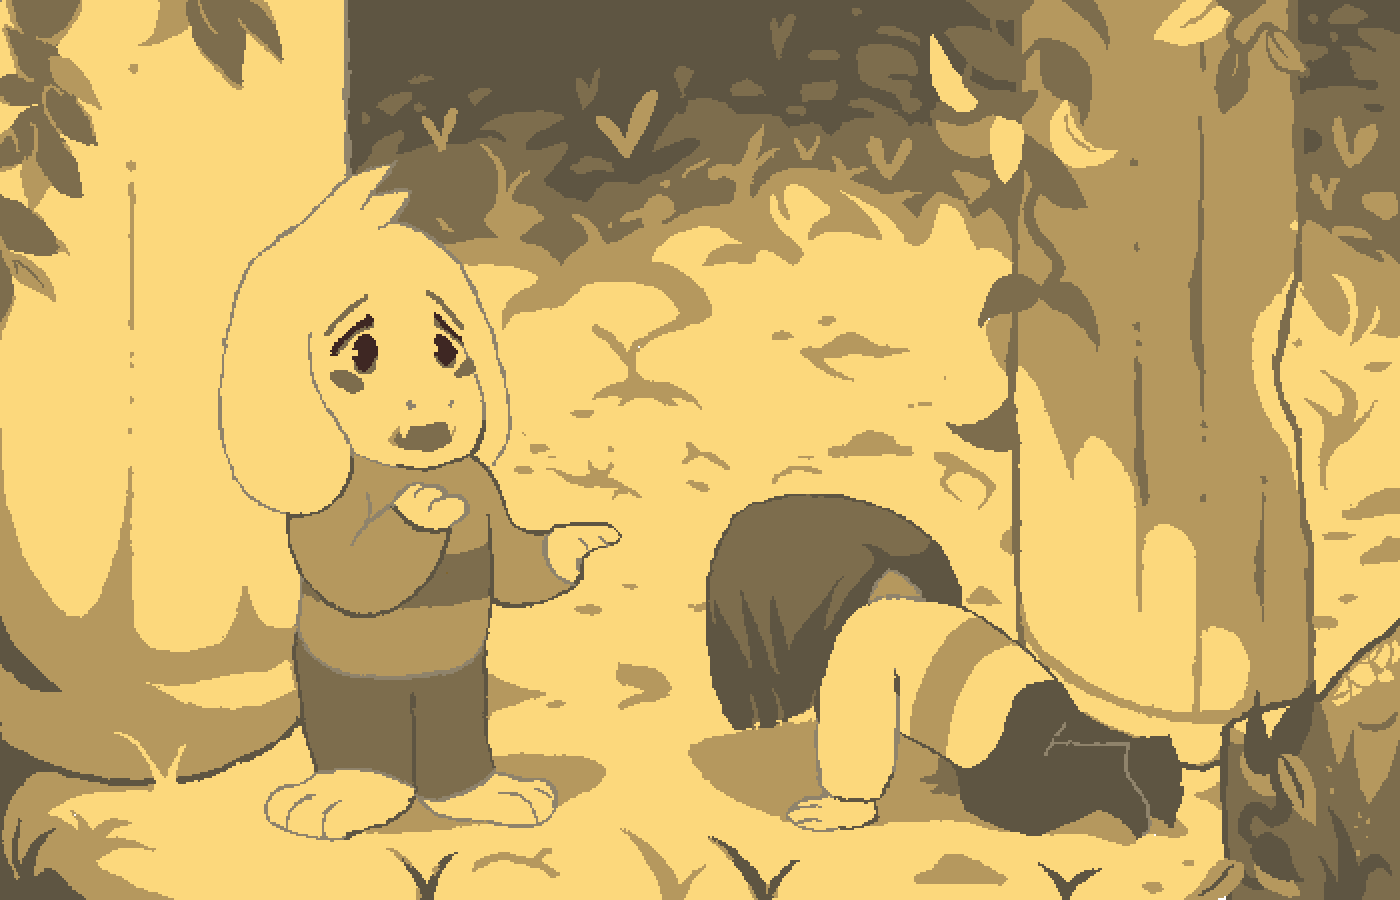 Undertale - Asriel and Chara Redraw